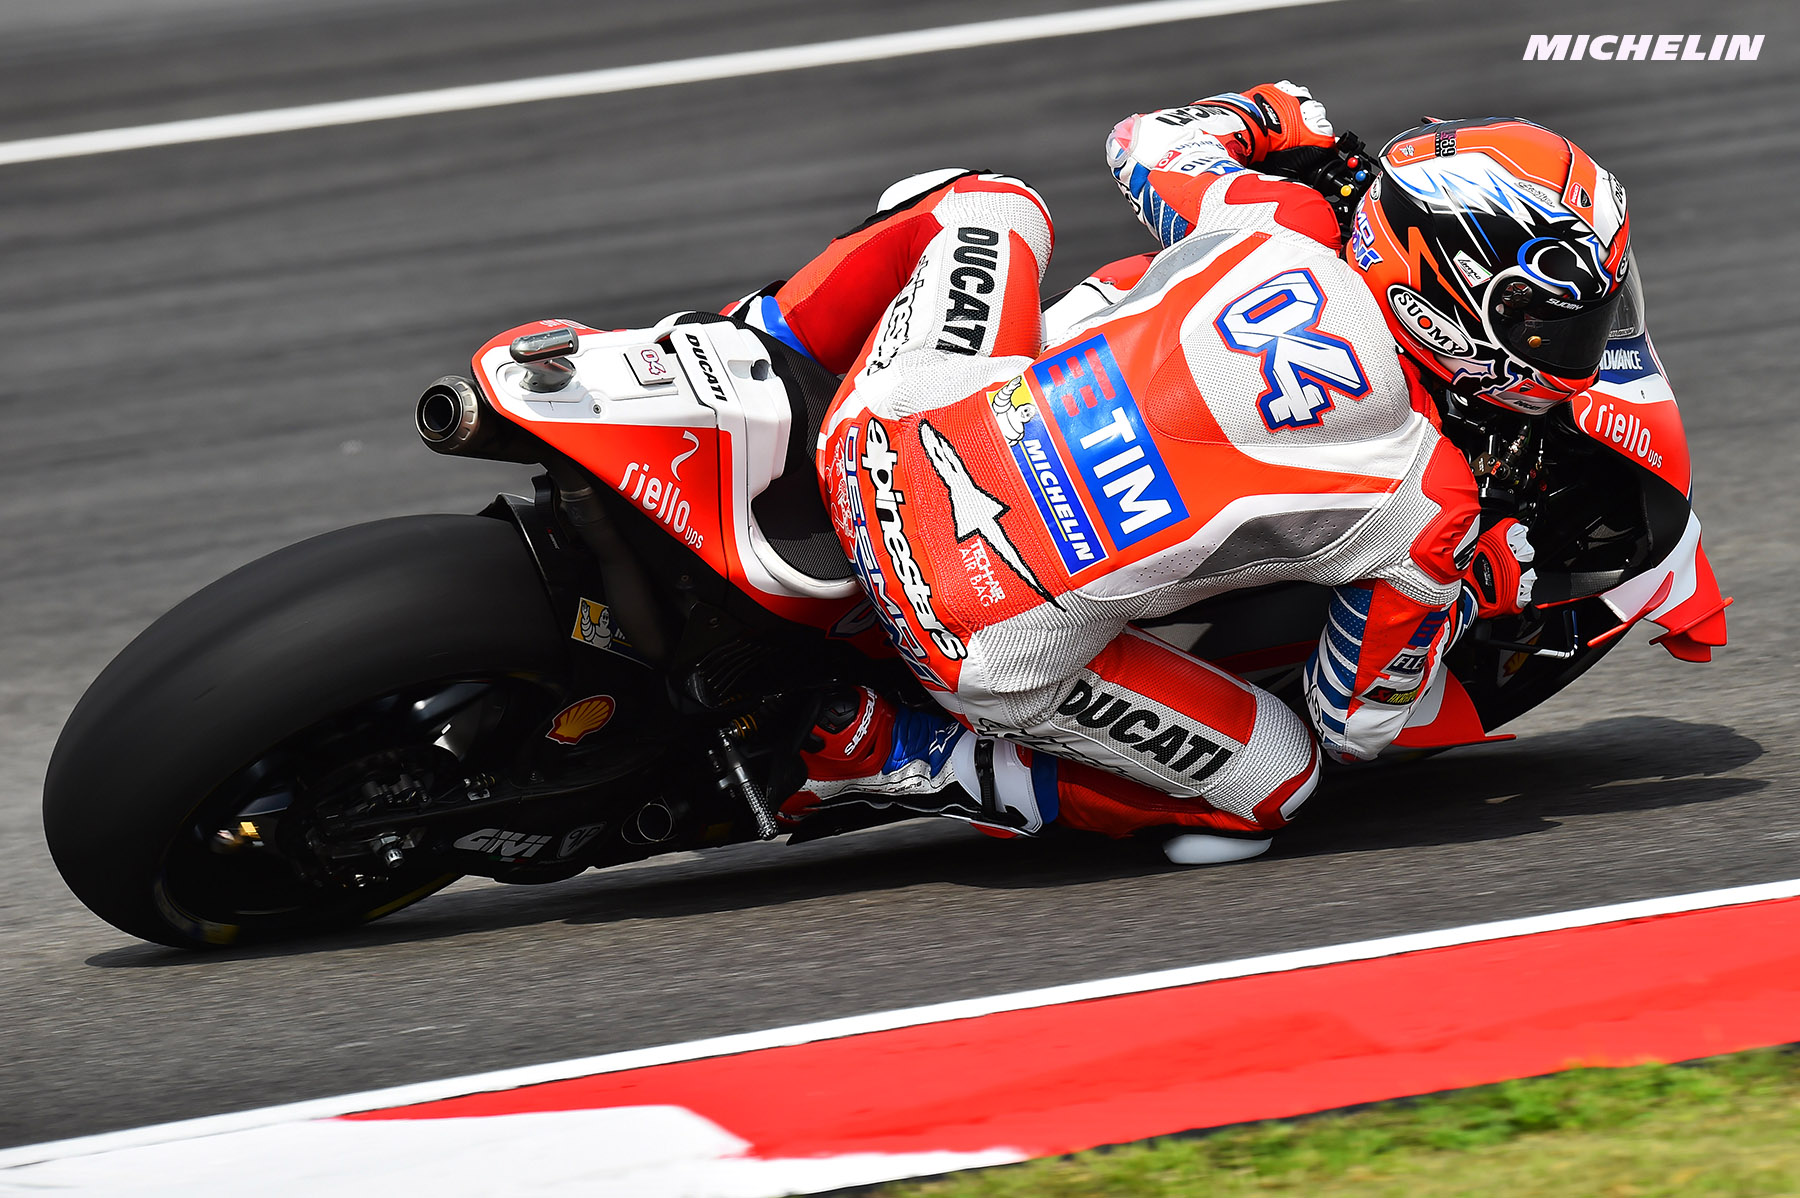 MotoGP: Dovizioso triumphs at Sepang